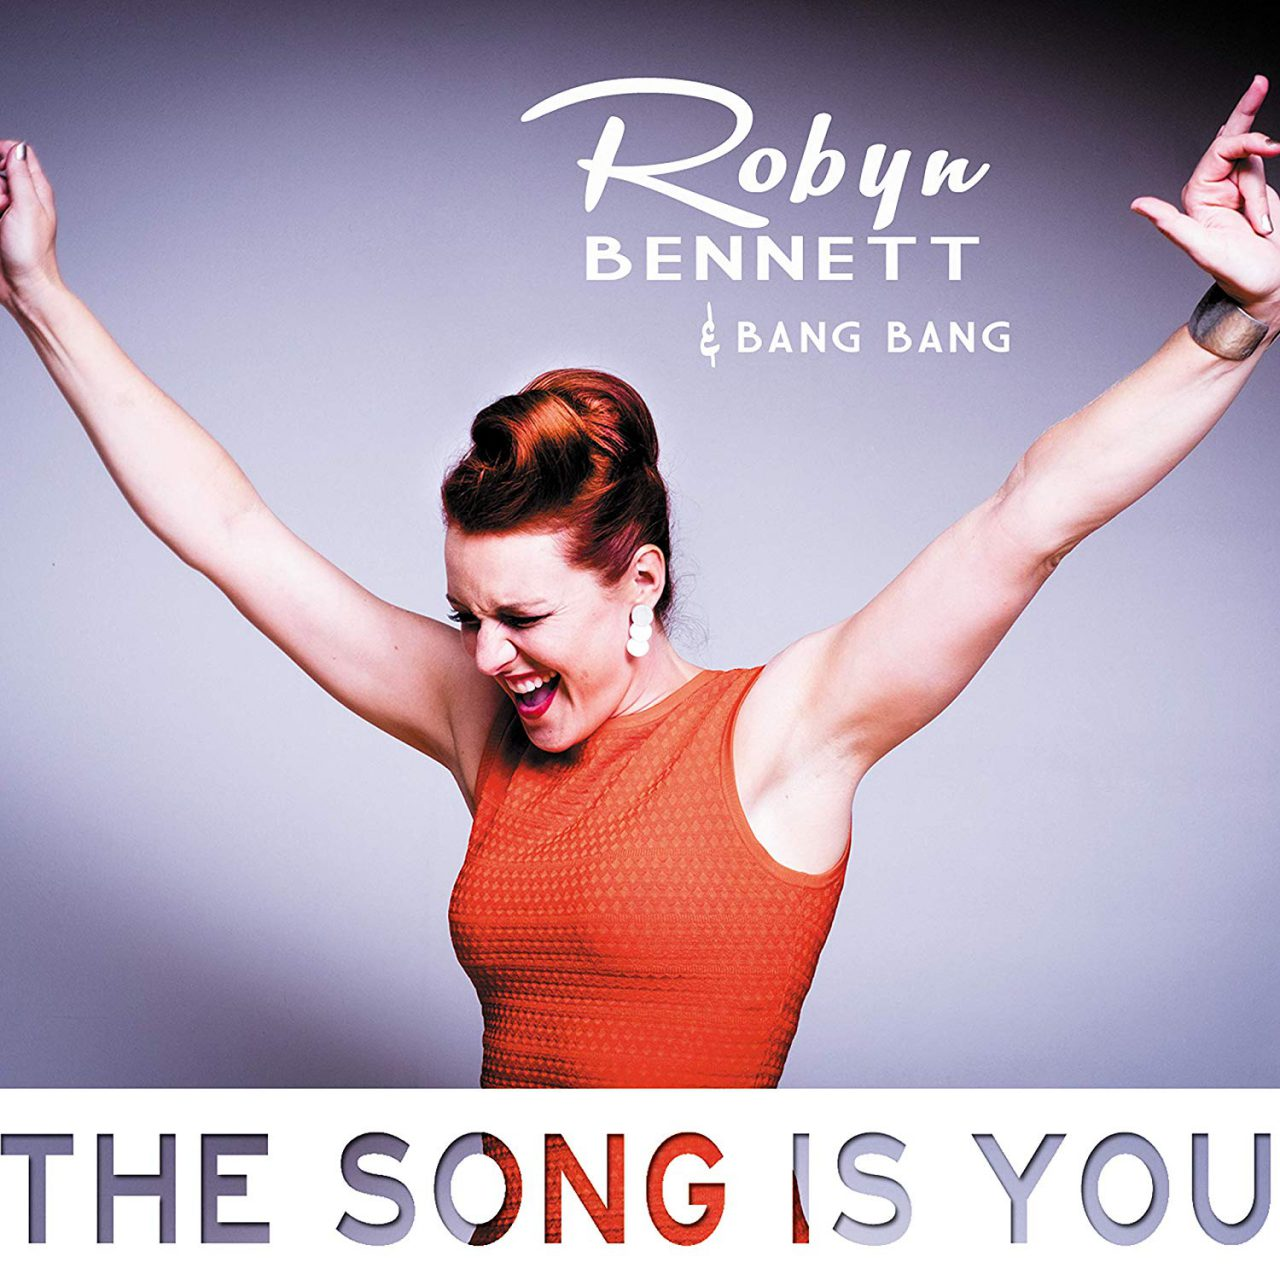 Robyn Bennett & Bang Bang – The Song Is You